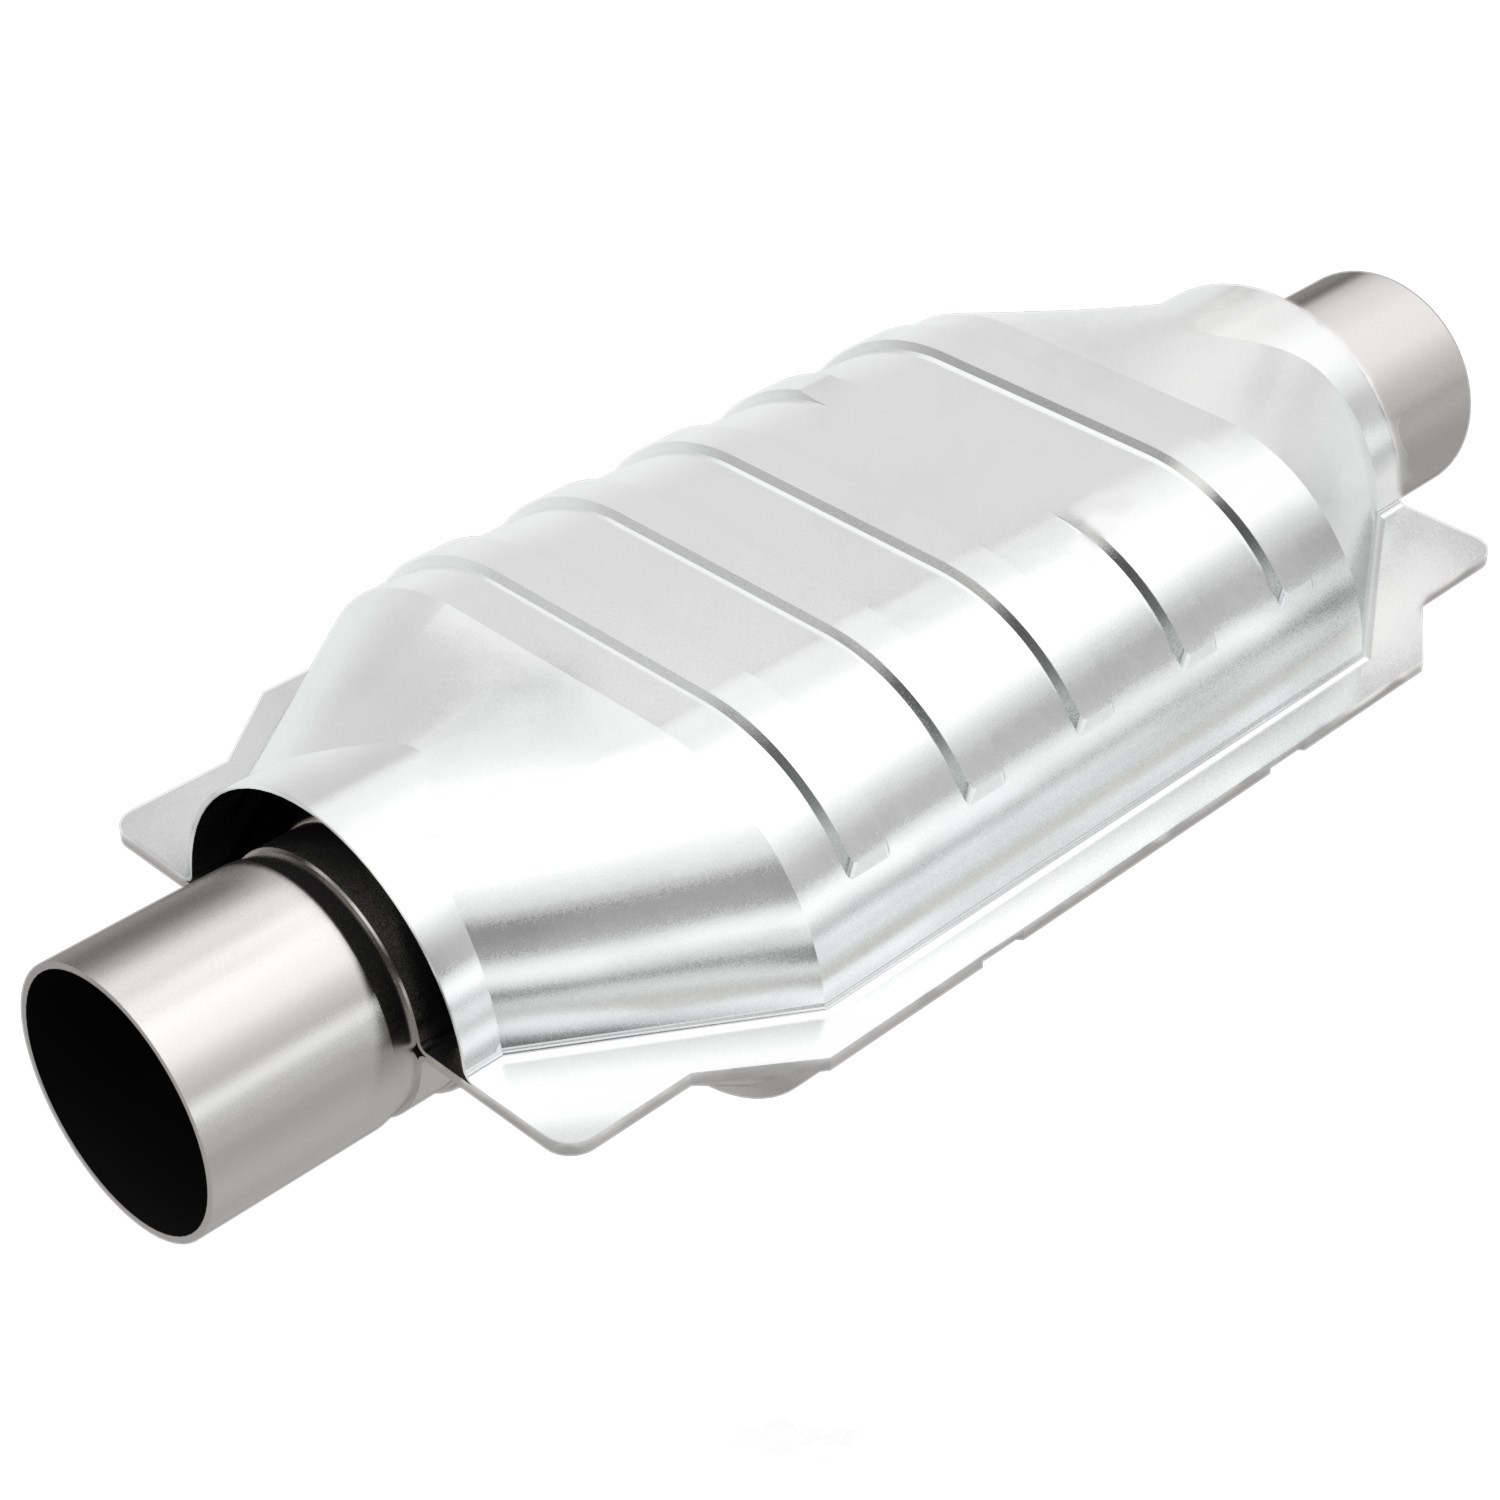 MAGNAFLOW CARB COMPLIANT CONVERTER - 2.25in. Universal California OBDII Catalytic Converter (Rear Left) - MFC 459005